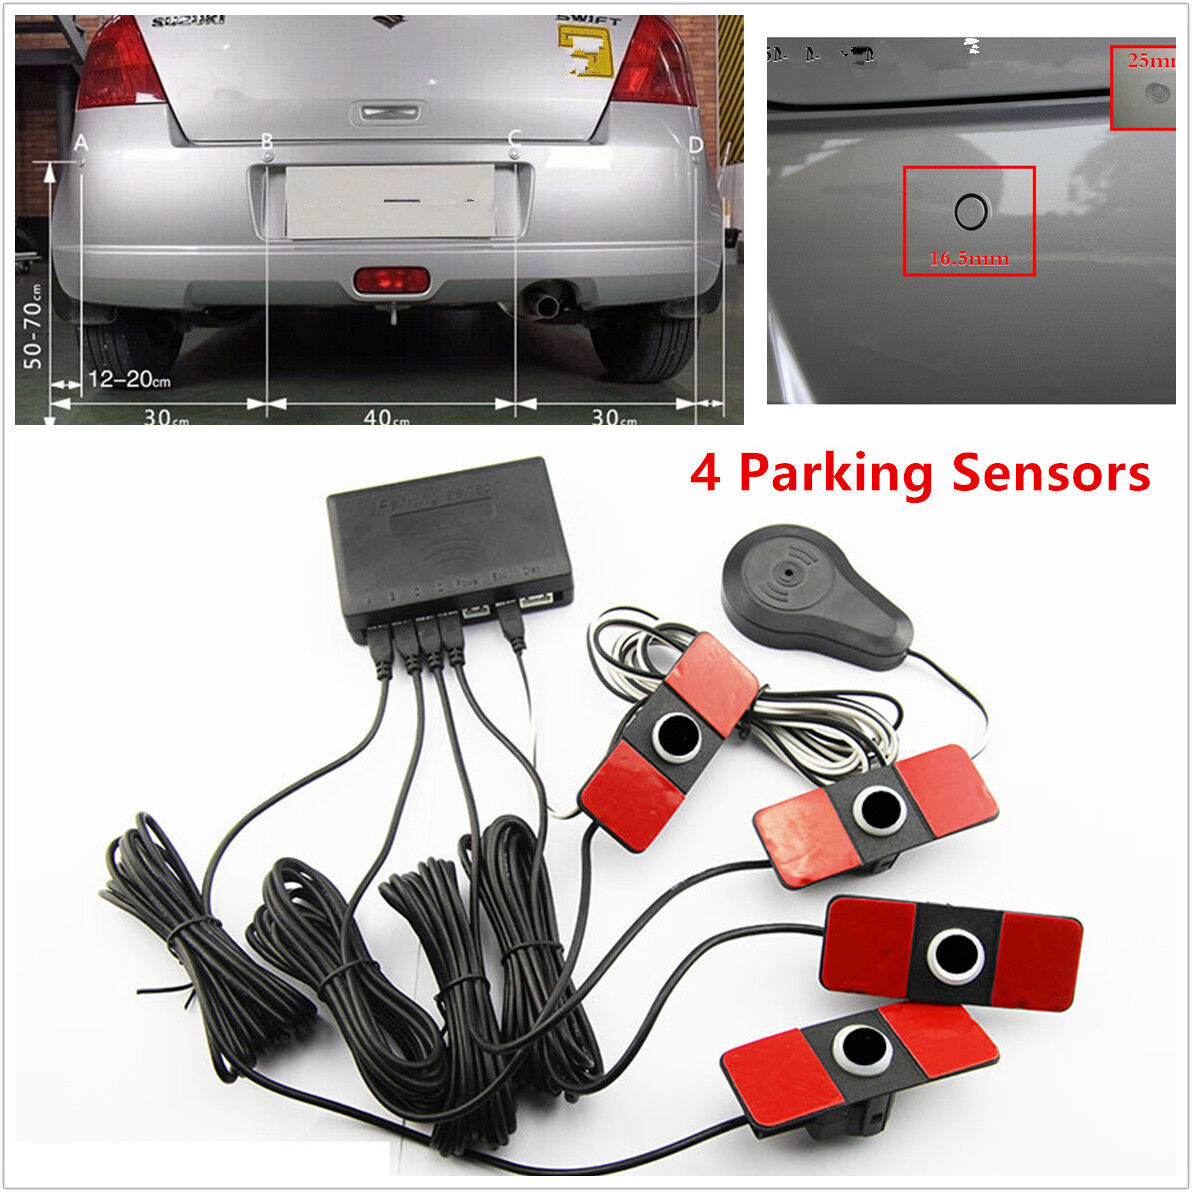 worldwide parking sensors market 2014 to Air sea logistics & automotive transportation news global parking sensors market analysis 2017-2021 illuminated by new report details whatech channel: automotive and transportation market research.